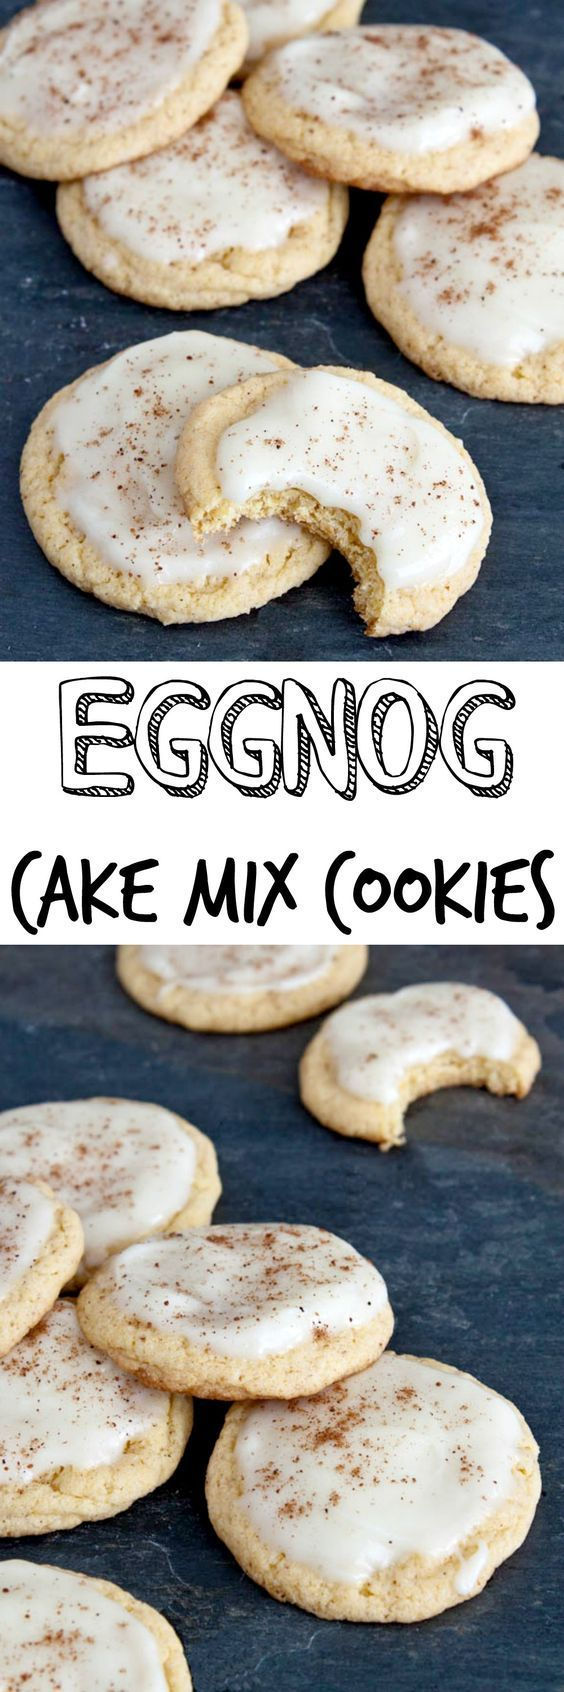 Eggnog cookies made with a cake mix! Use eggnog with the